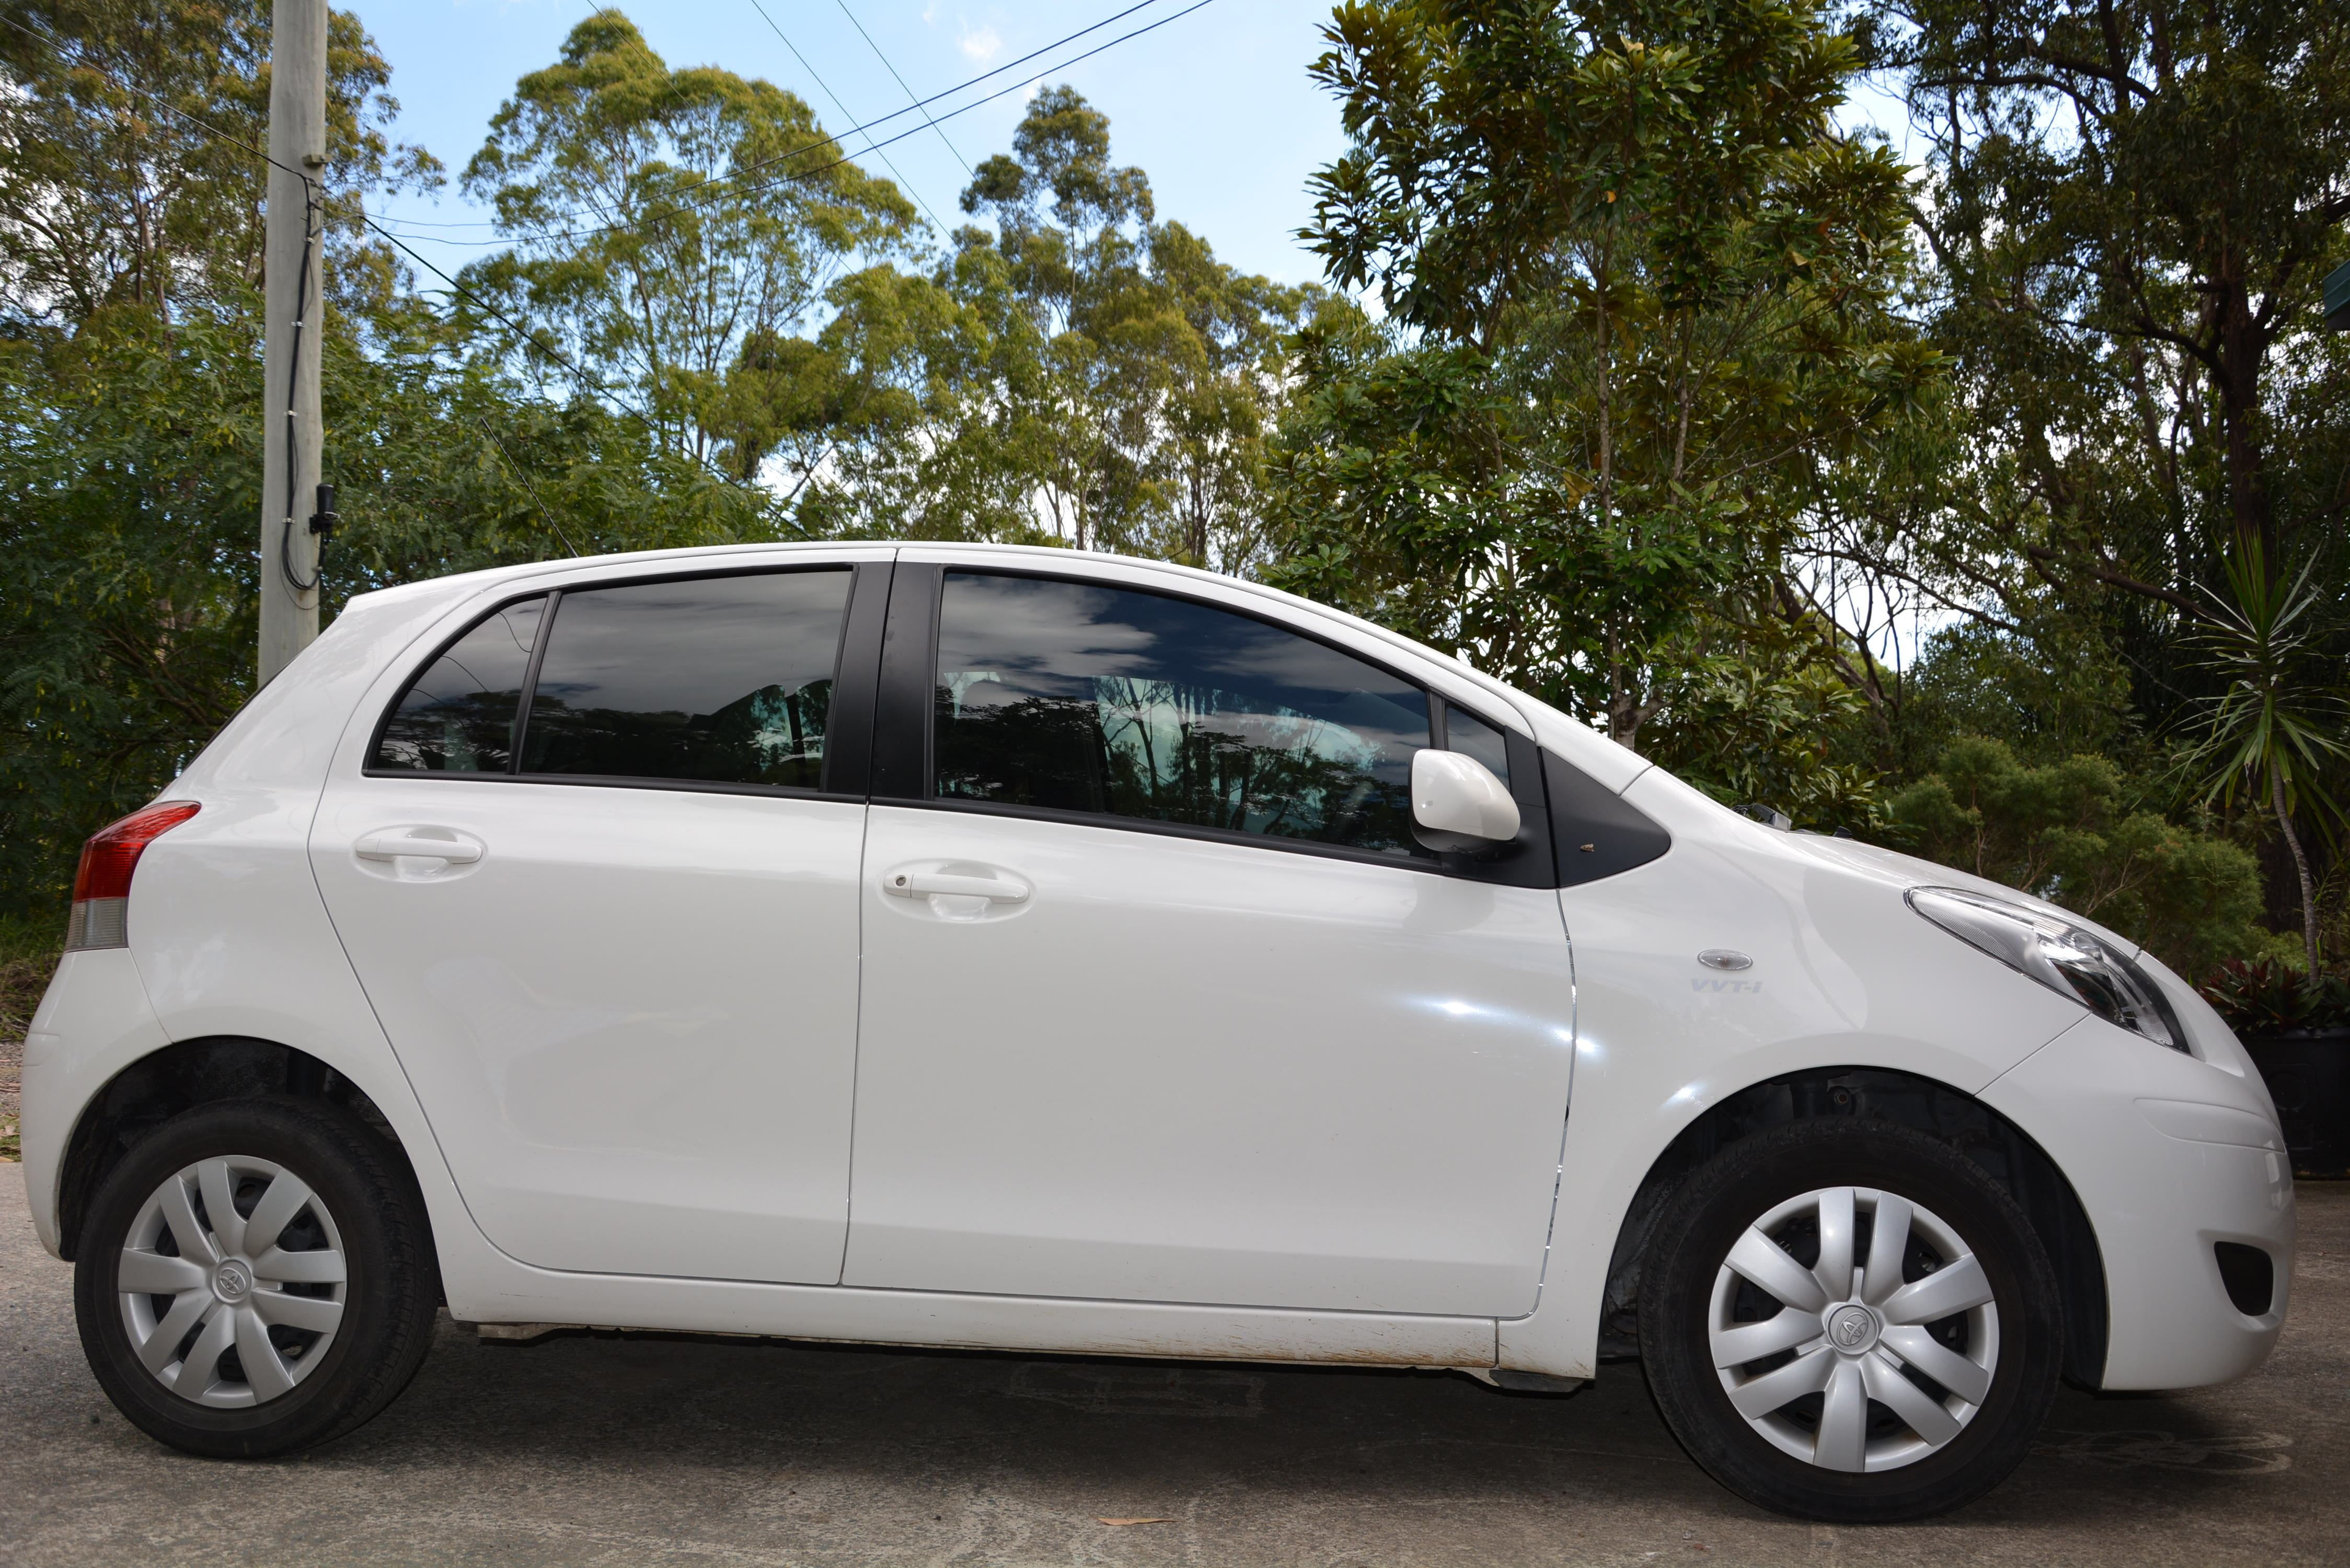 used honda cars for sale gumtree